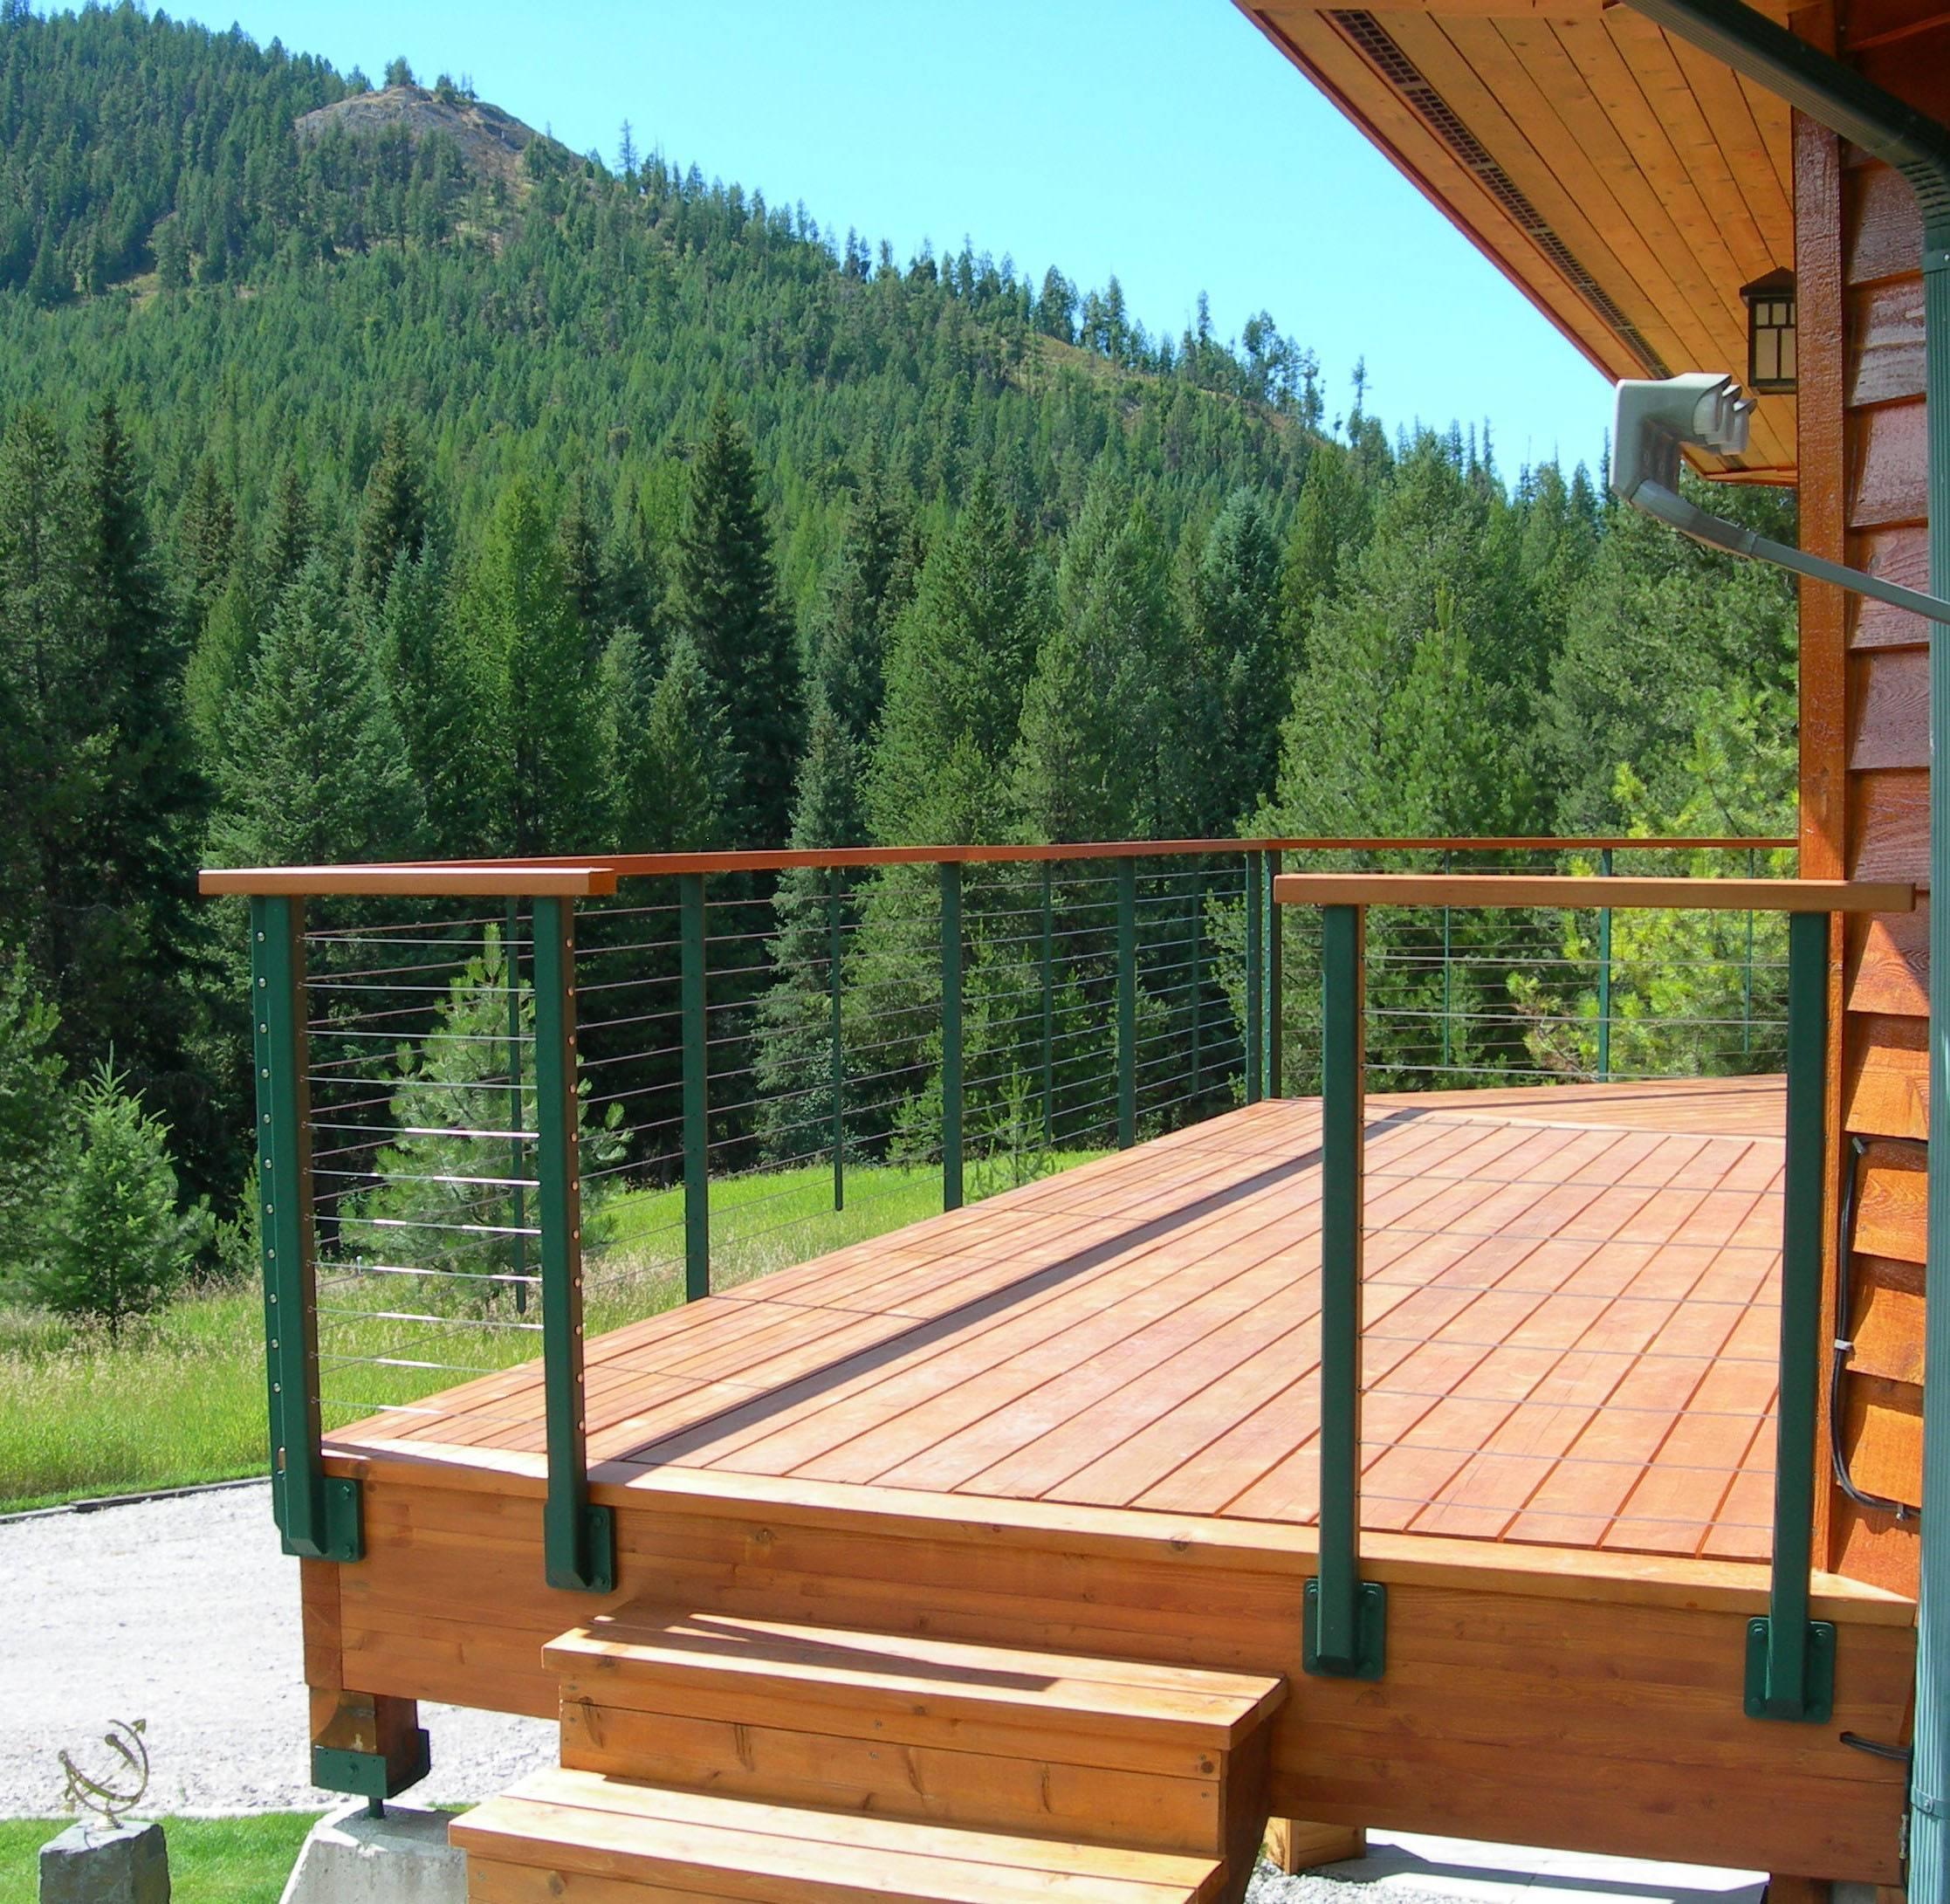 Outside steps leadng up to deck